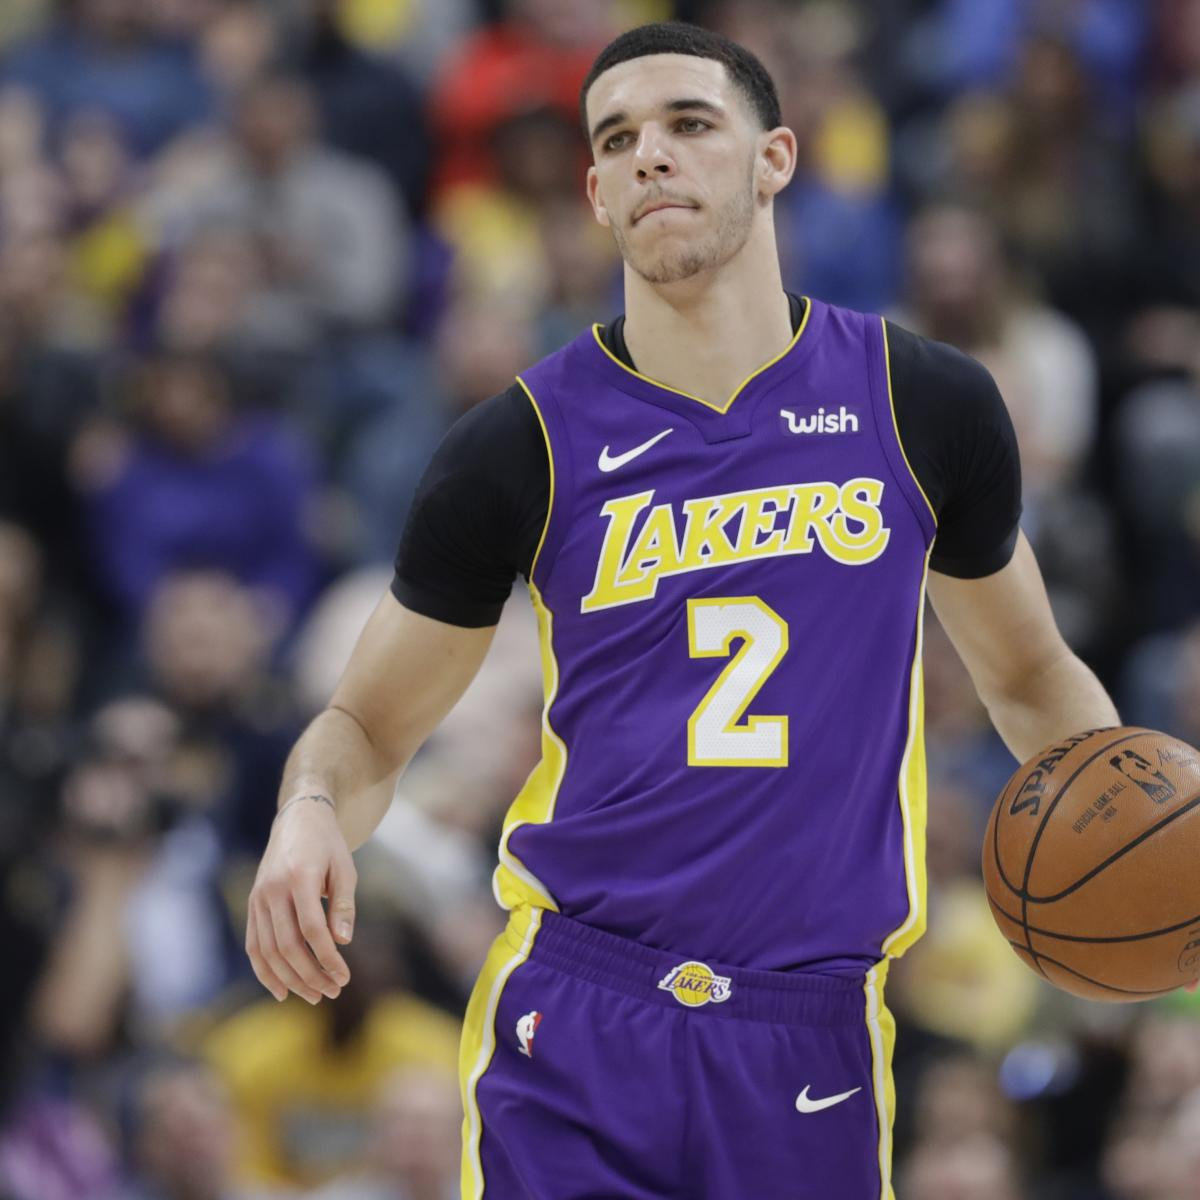 Lonzo Ball Reportedly Expected to Be Ready for Lakers Camp After Knee Injury